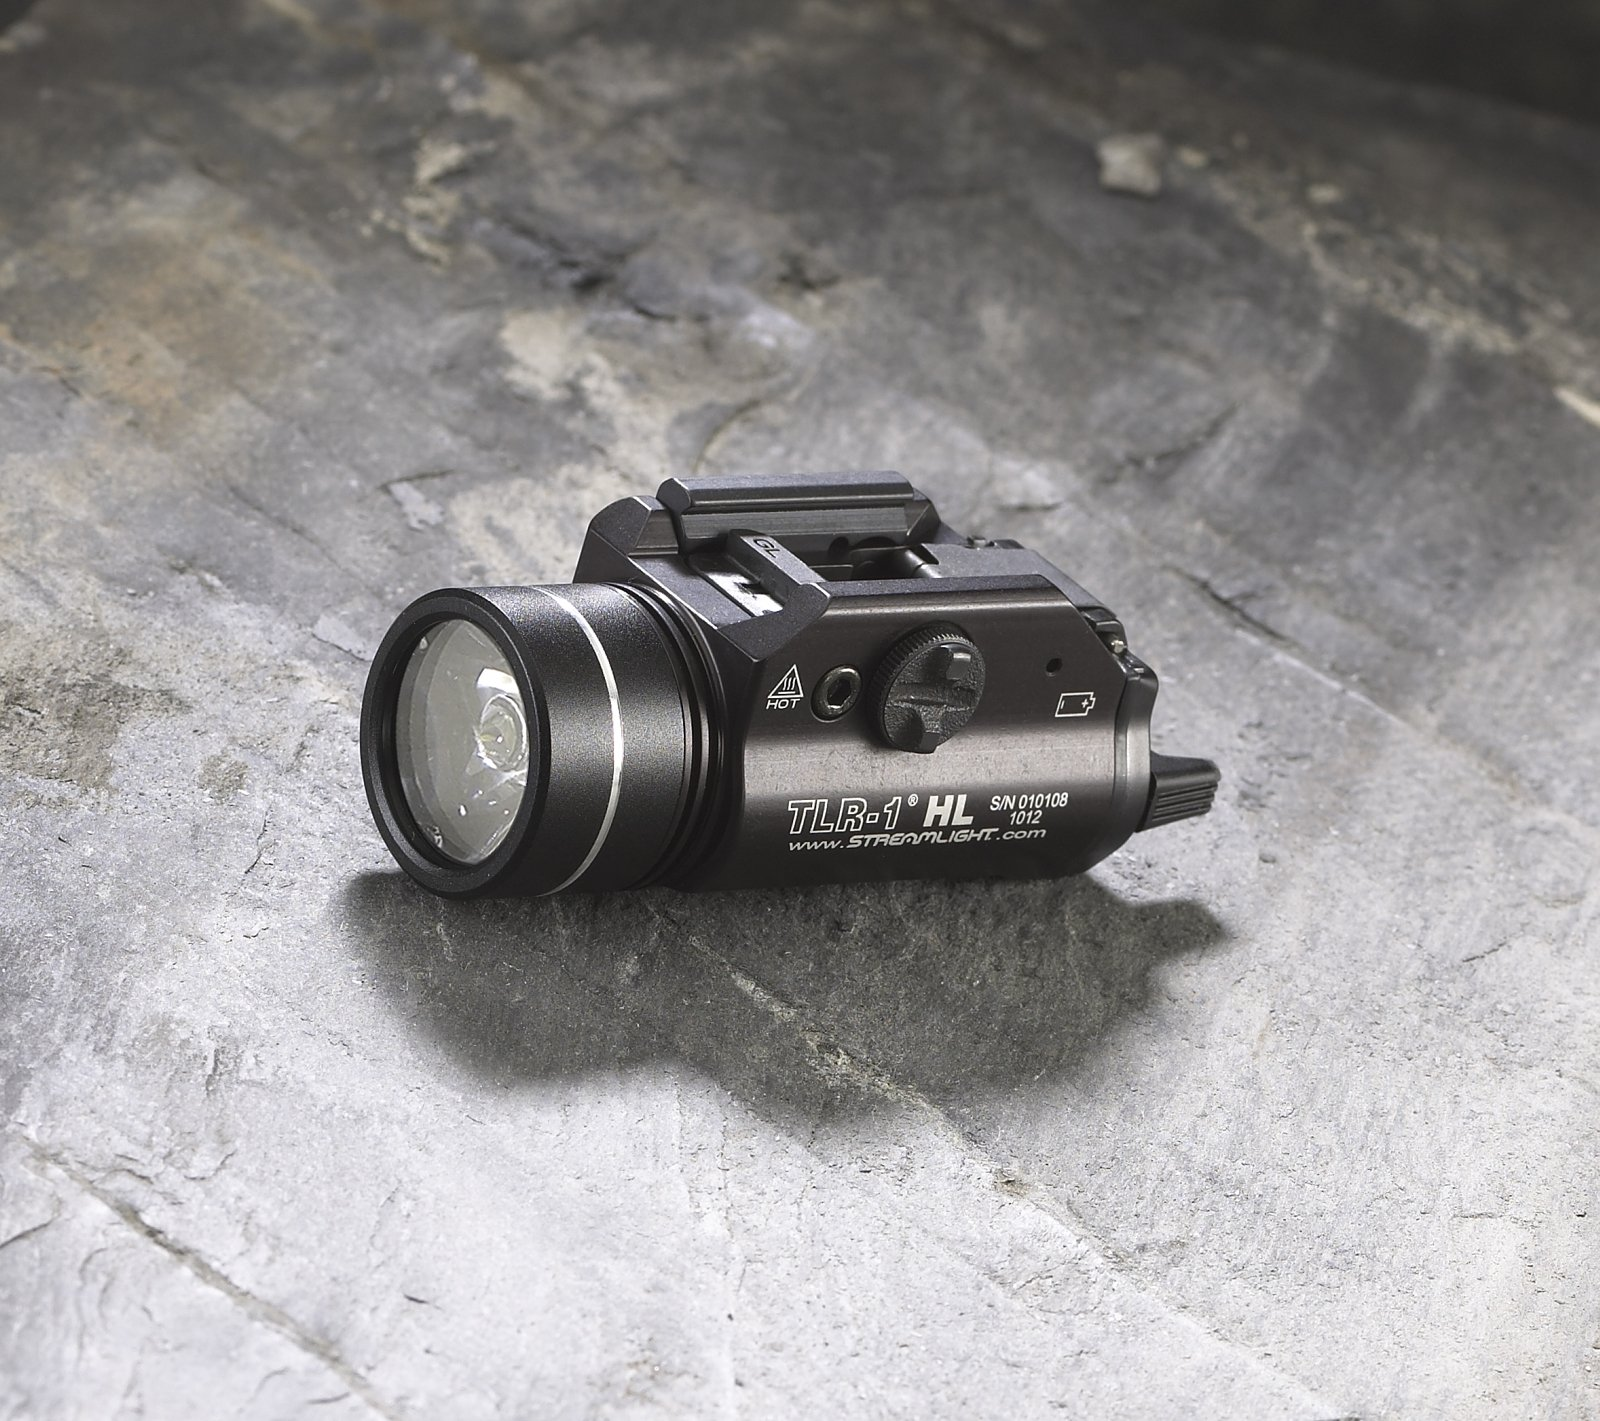 Streamlight 69260 TLR-1 HL Weapon Mount Tactical Flashlight Light 800 Lumens with Strobe by Streamlight (Image #4)